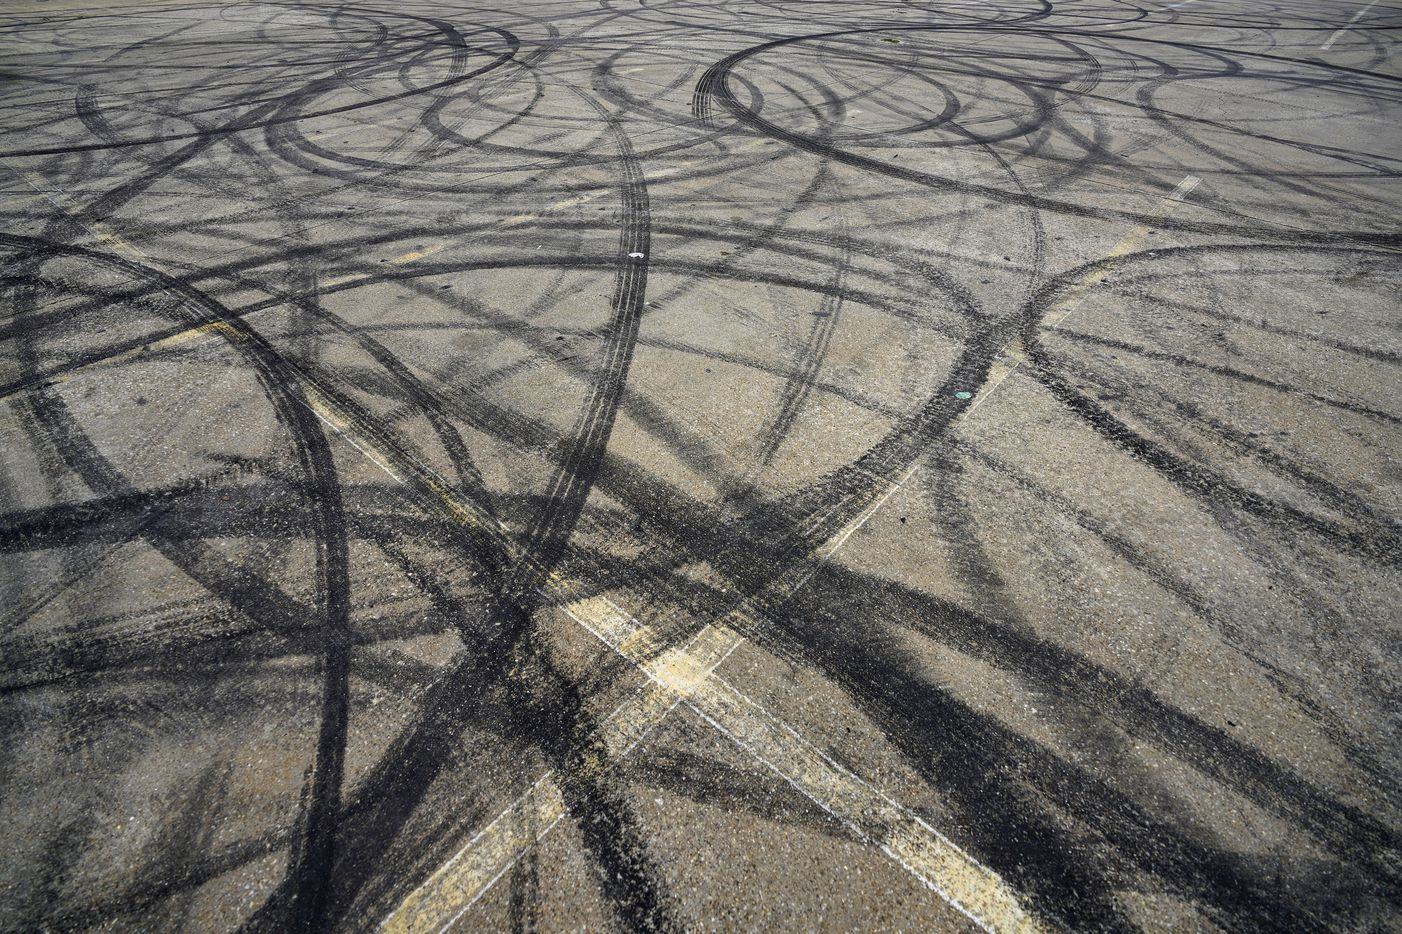 Skid marks are seen in a parking lot at 1400 S. Henderson Avenue on Monday, March 9, 2020, in Dallas.